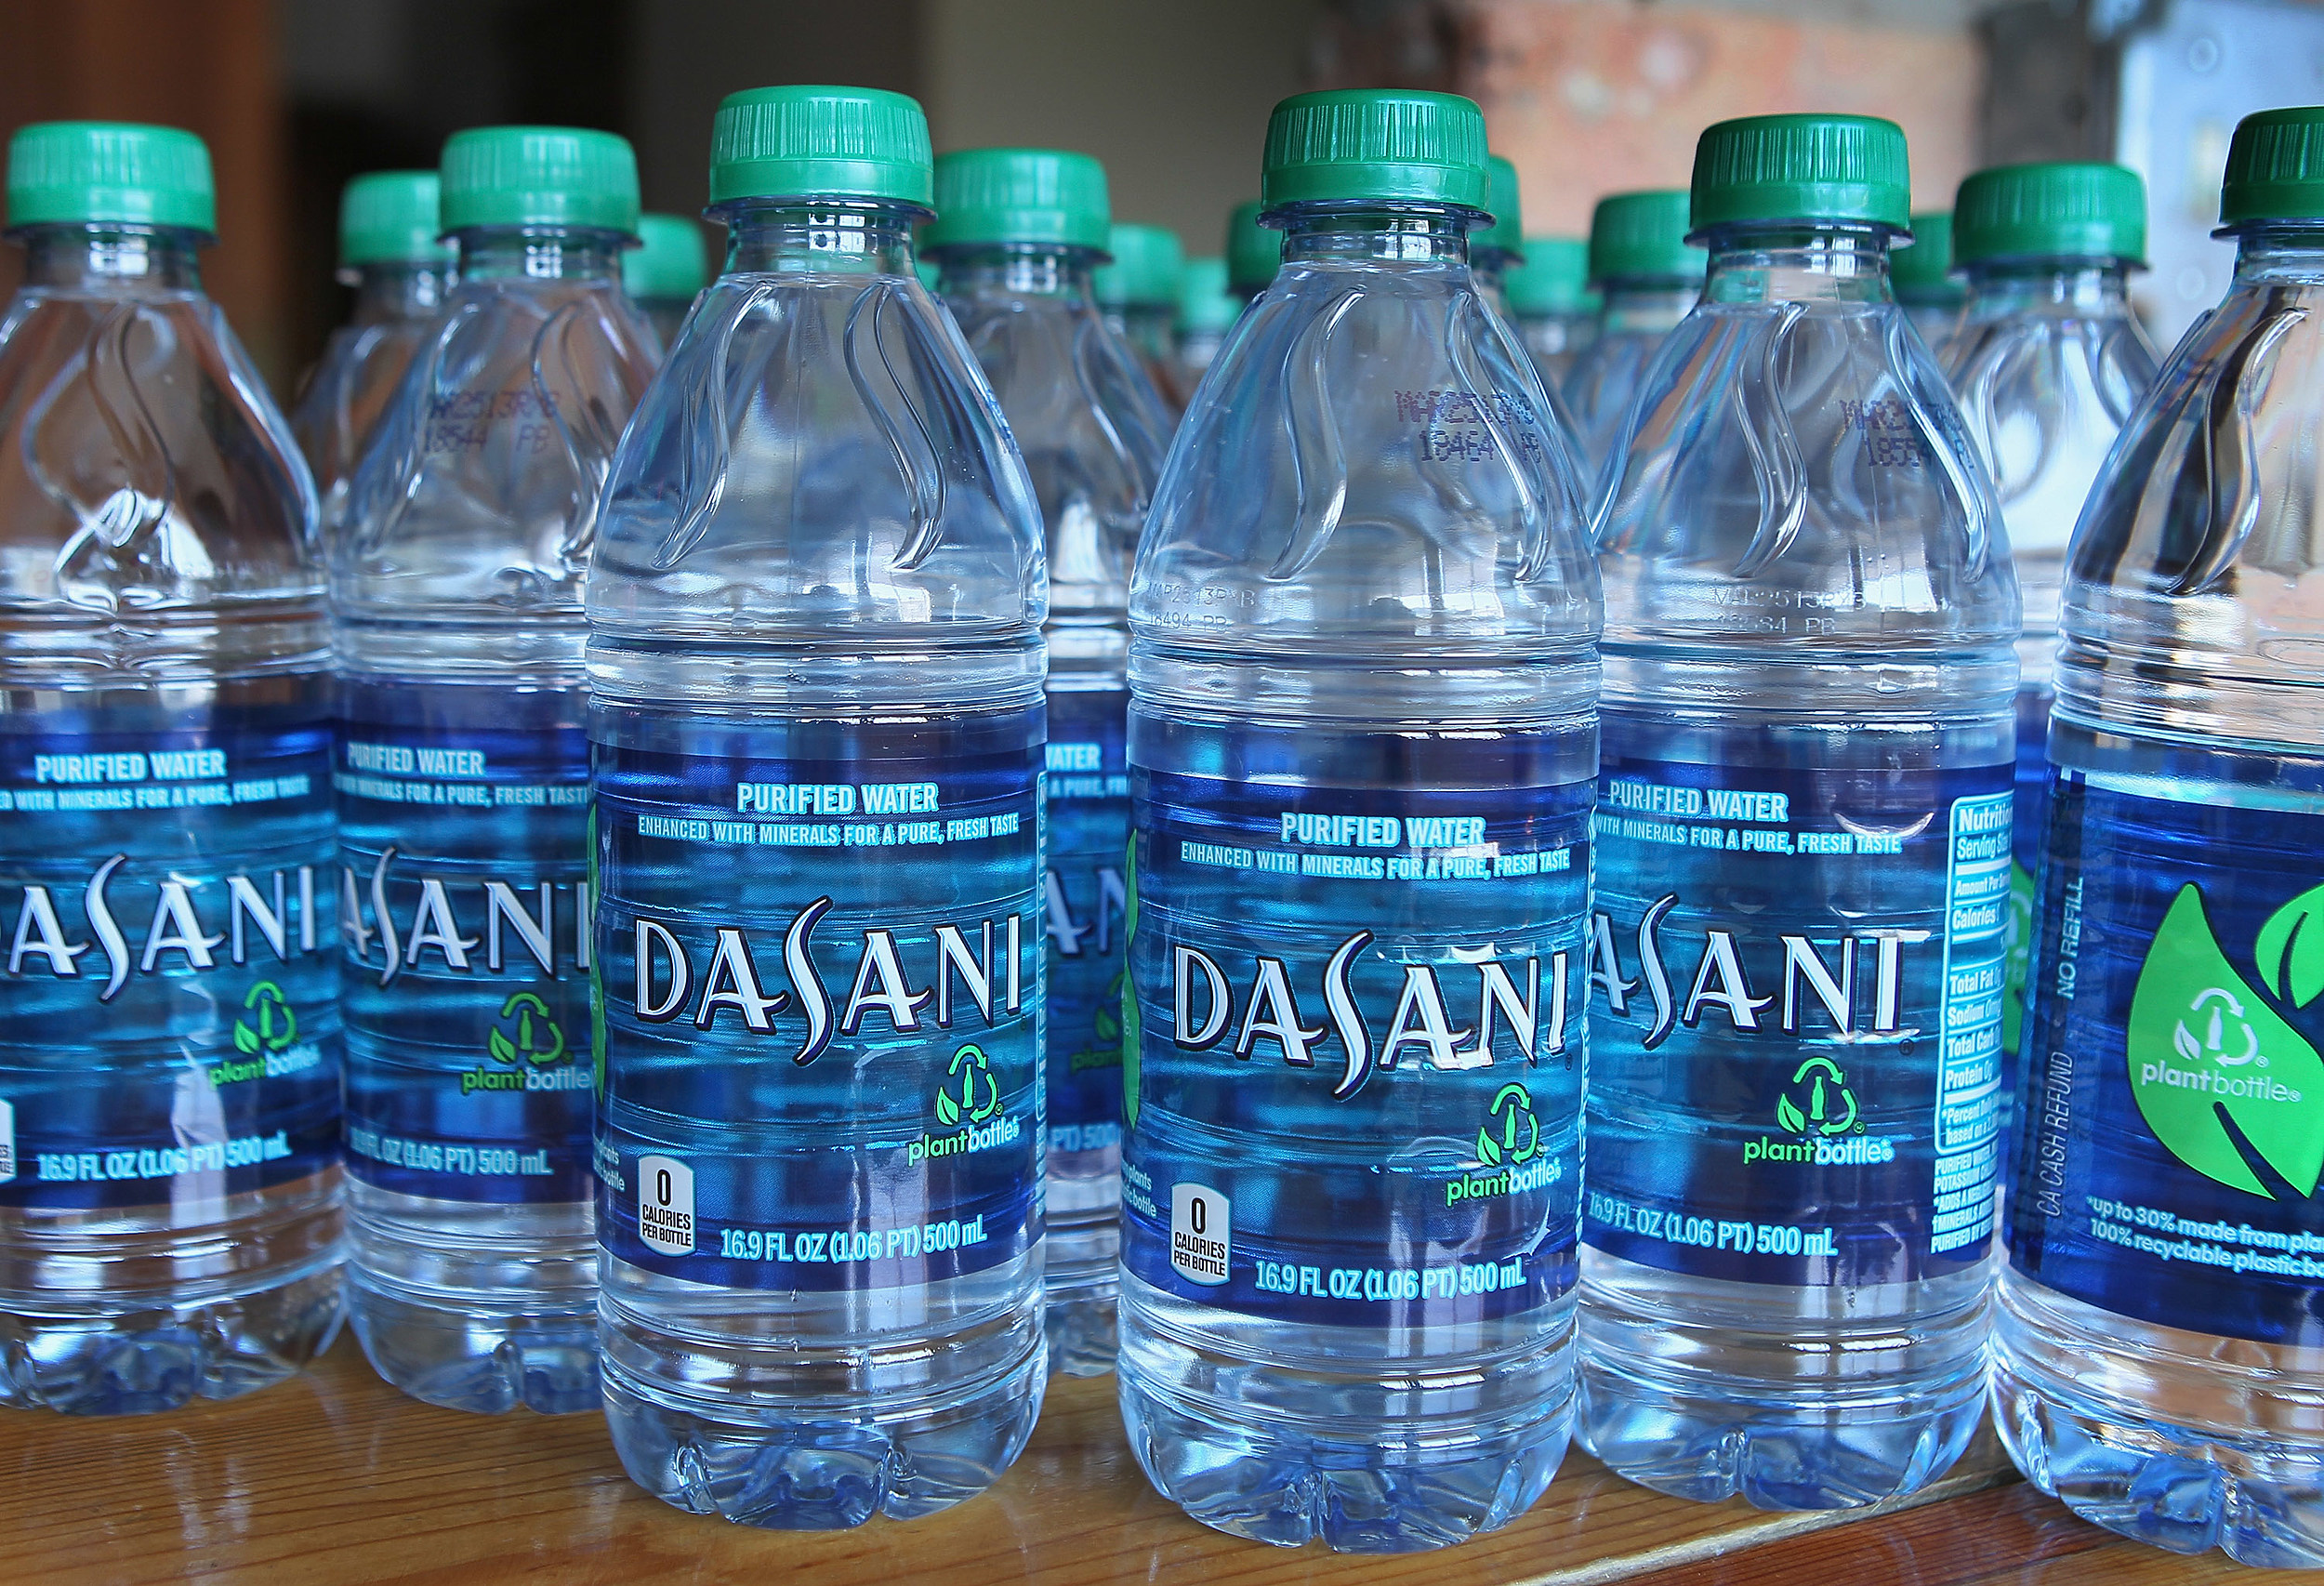 How are dasani water bottles made